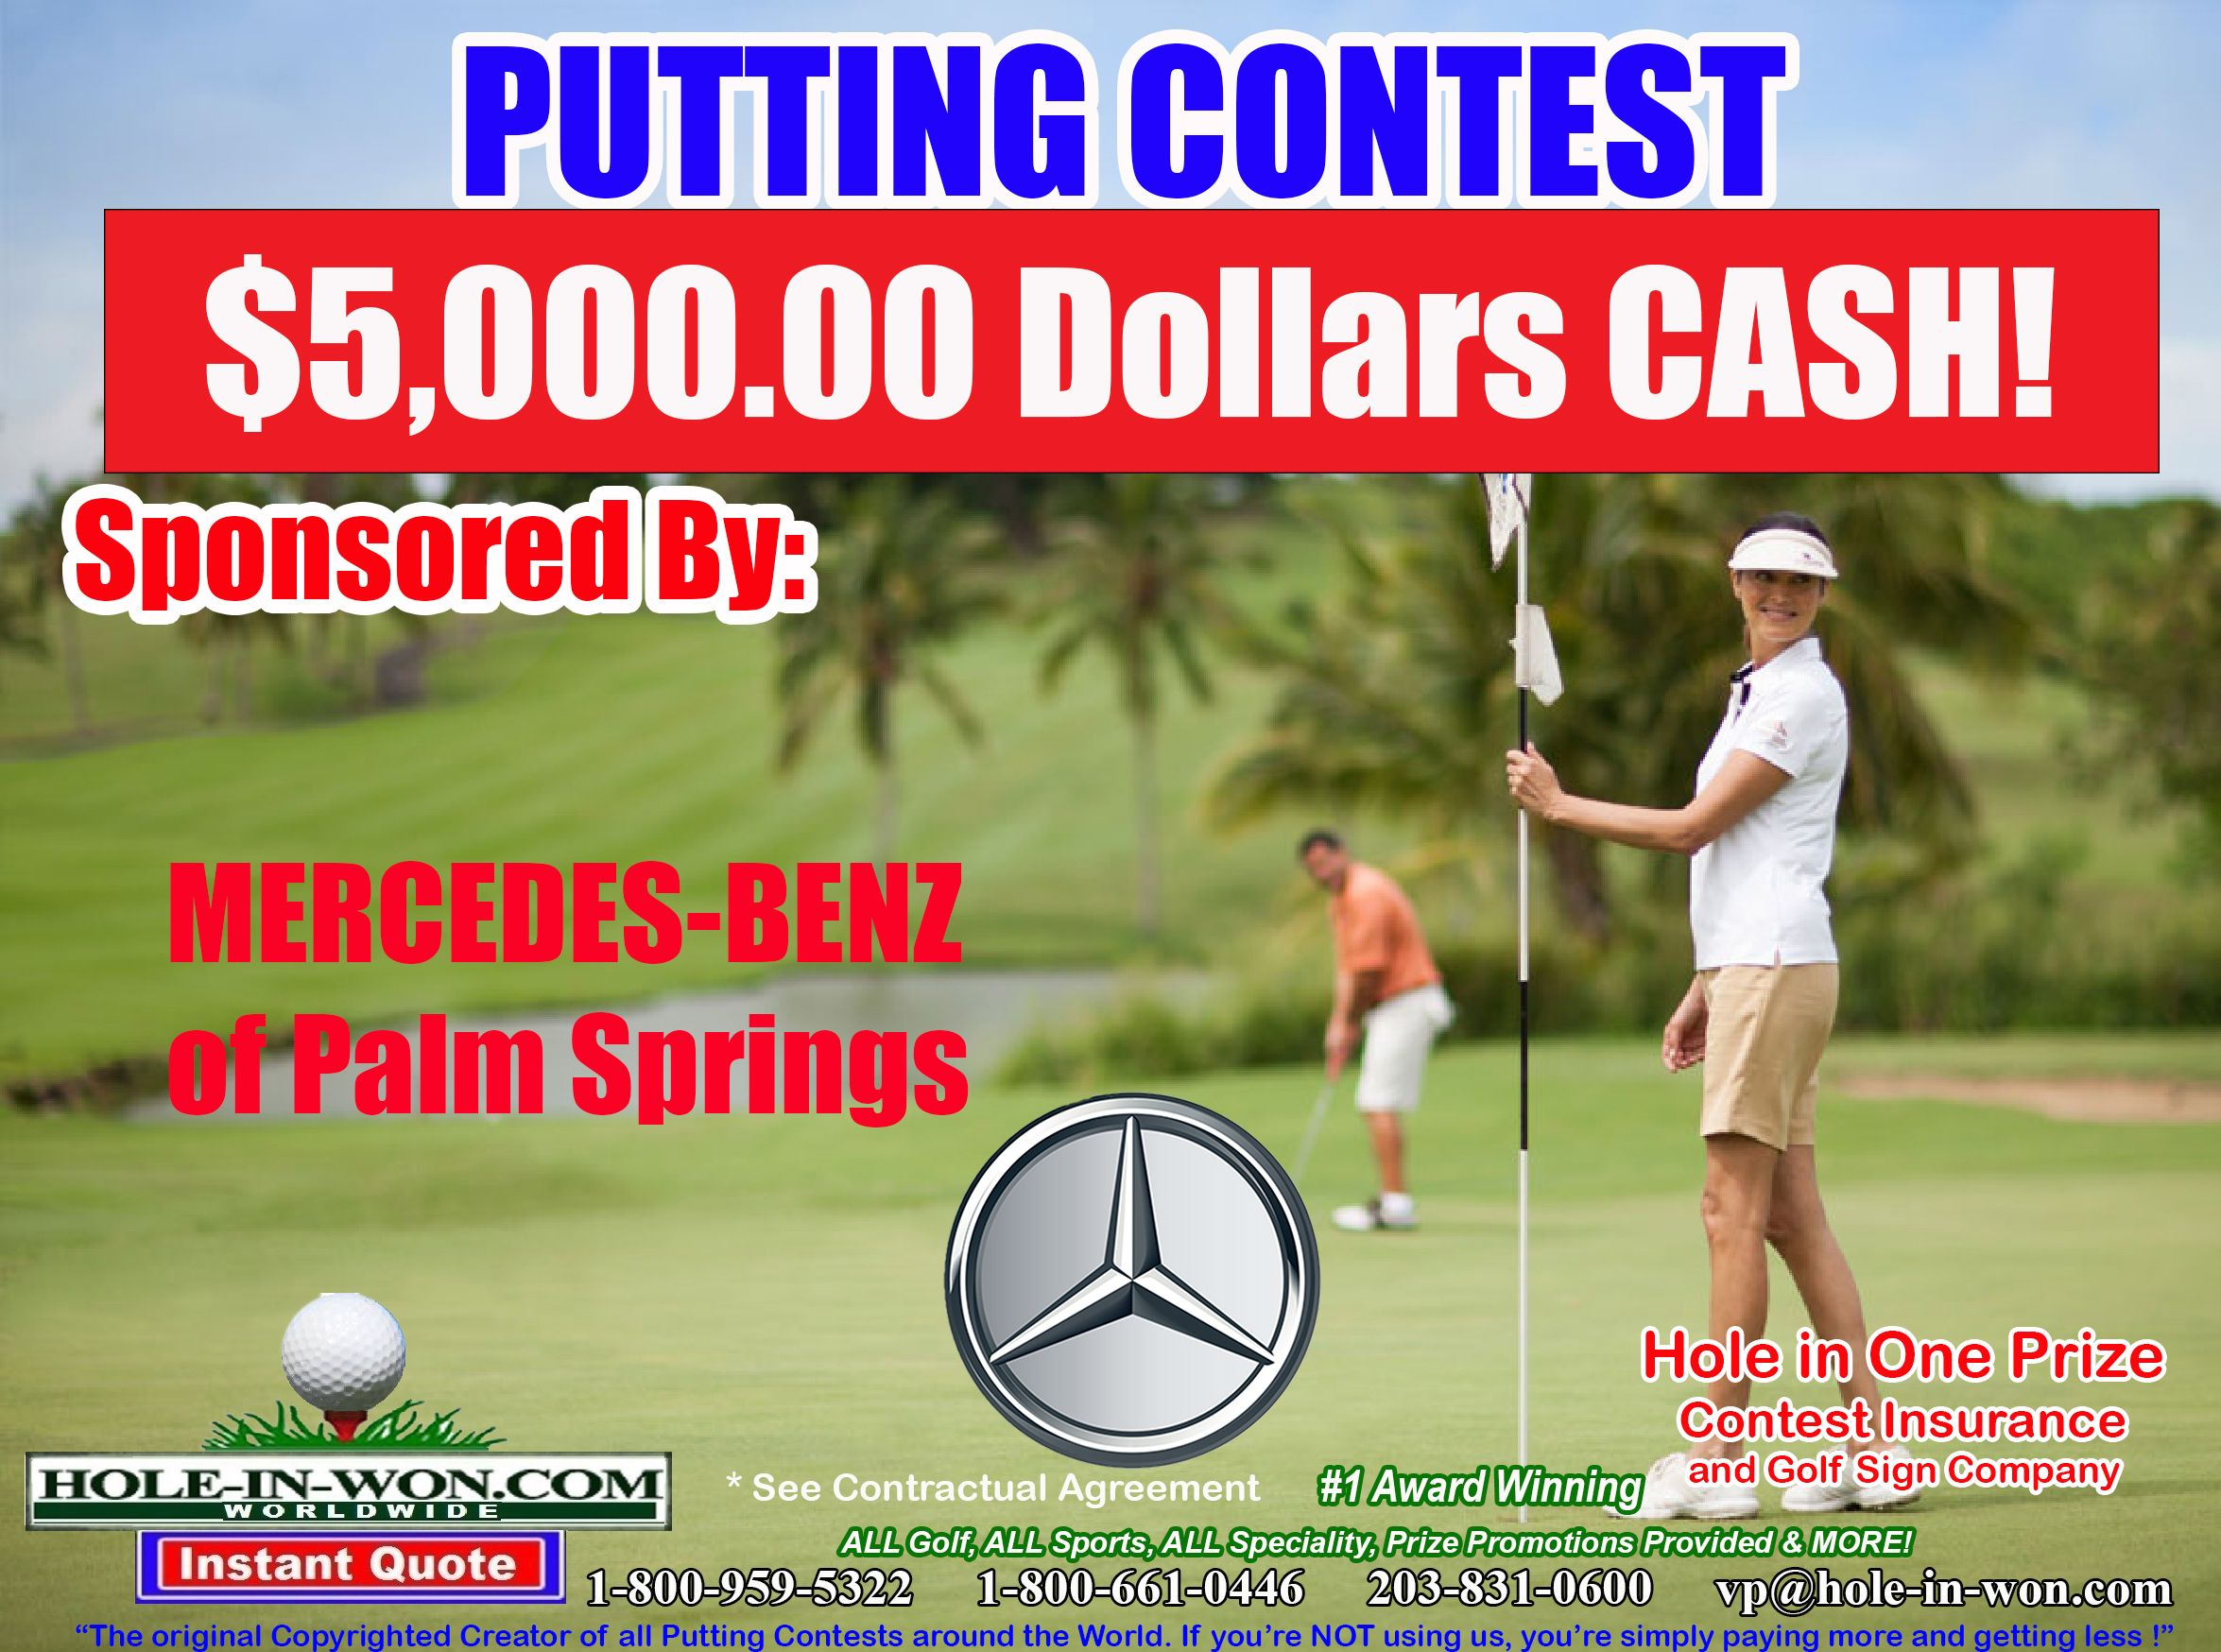 Putting Contests And Putting Contest Insurance 203 831 0600 Vp